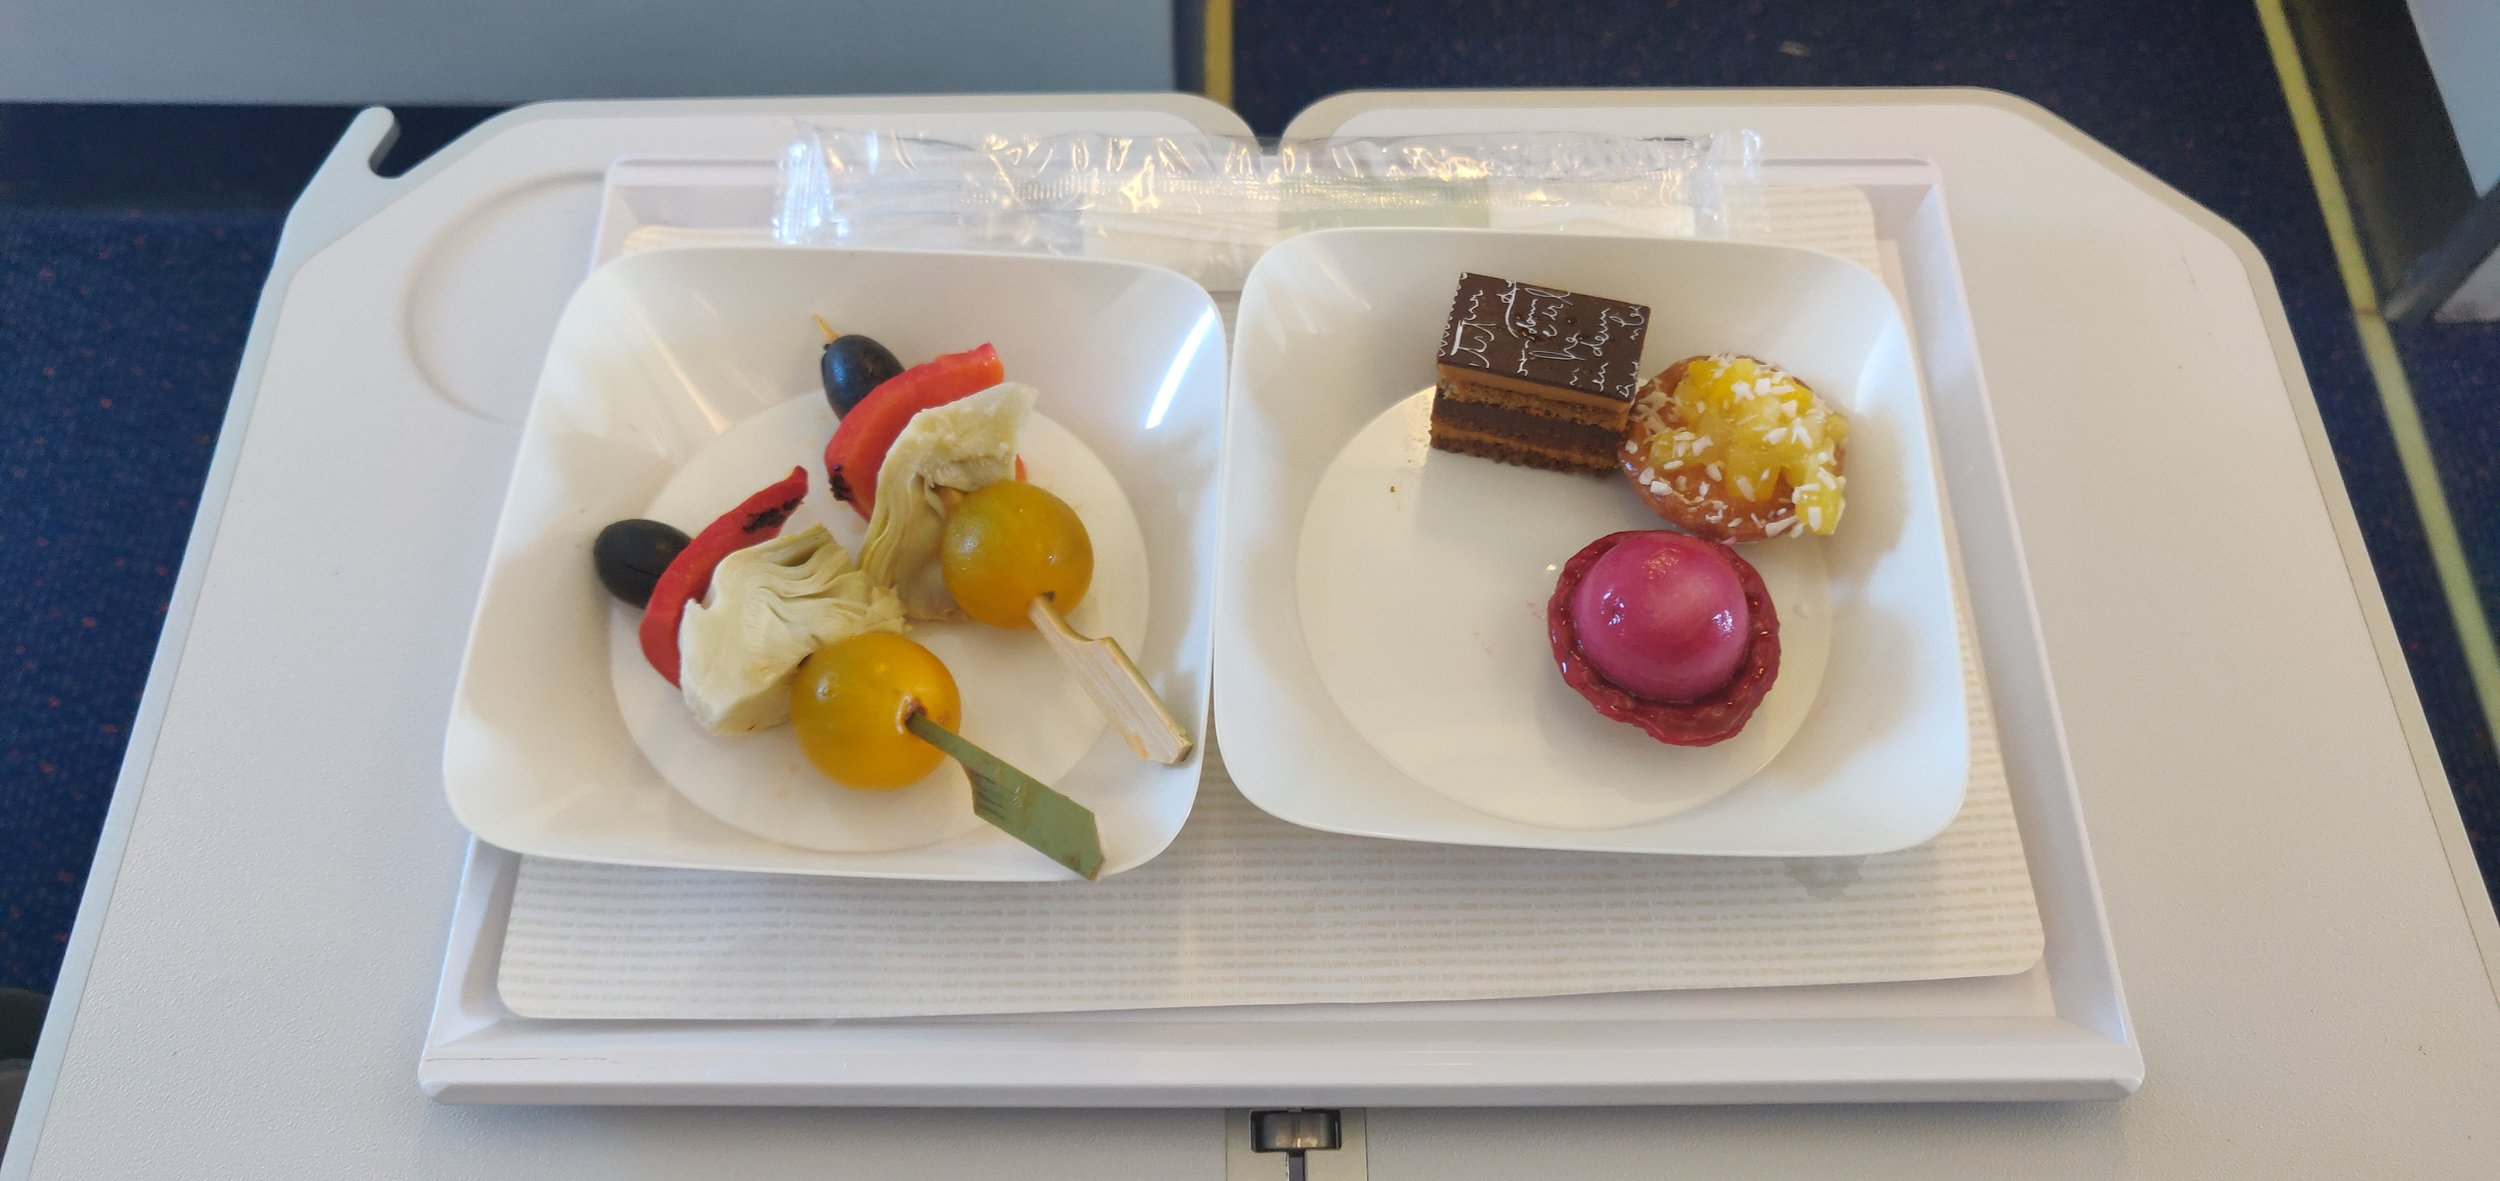 Brussel Airlines Business Class A320 - Tapas